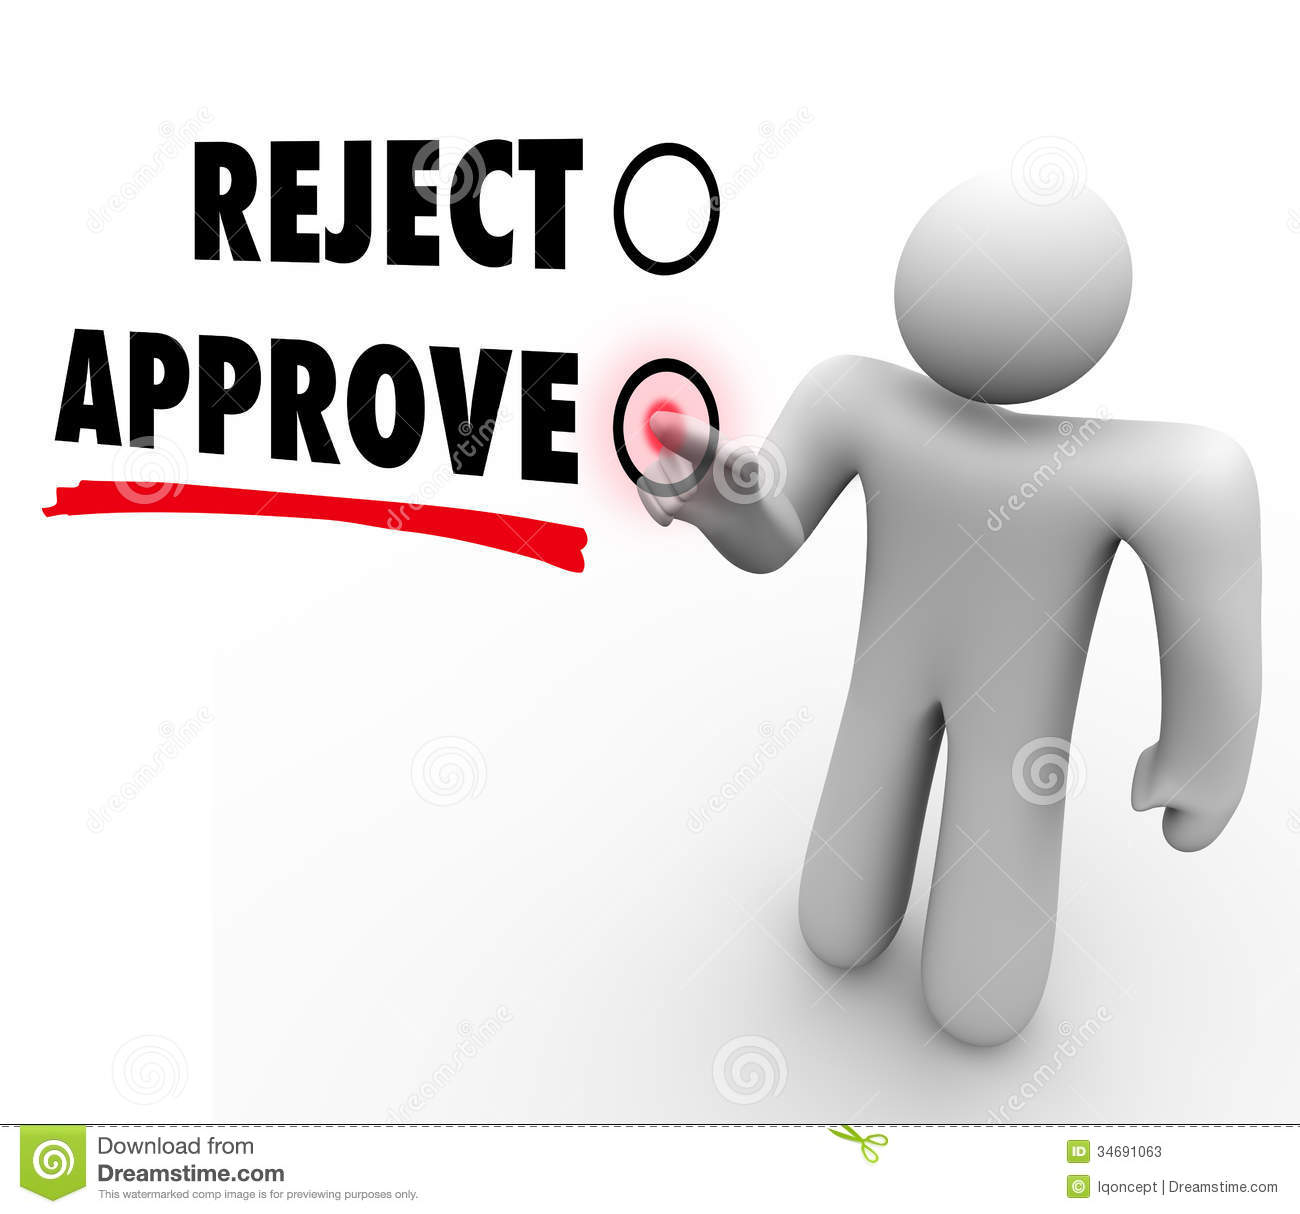 Cartoon Animation Wallpaper Free Download Reject Vs Approve Man Voting Touch Screen Response Stock